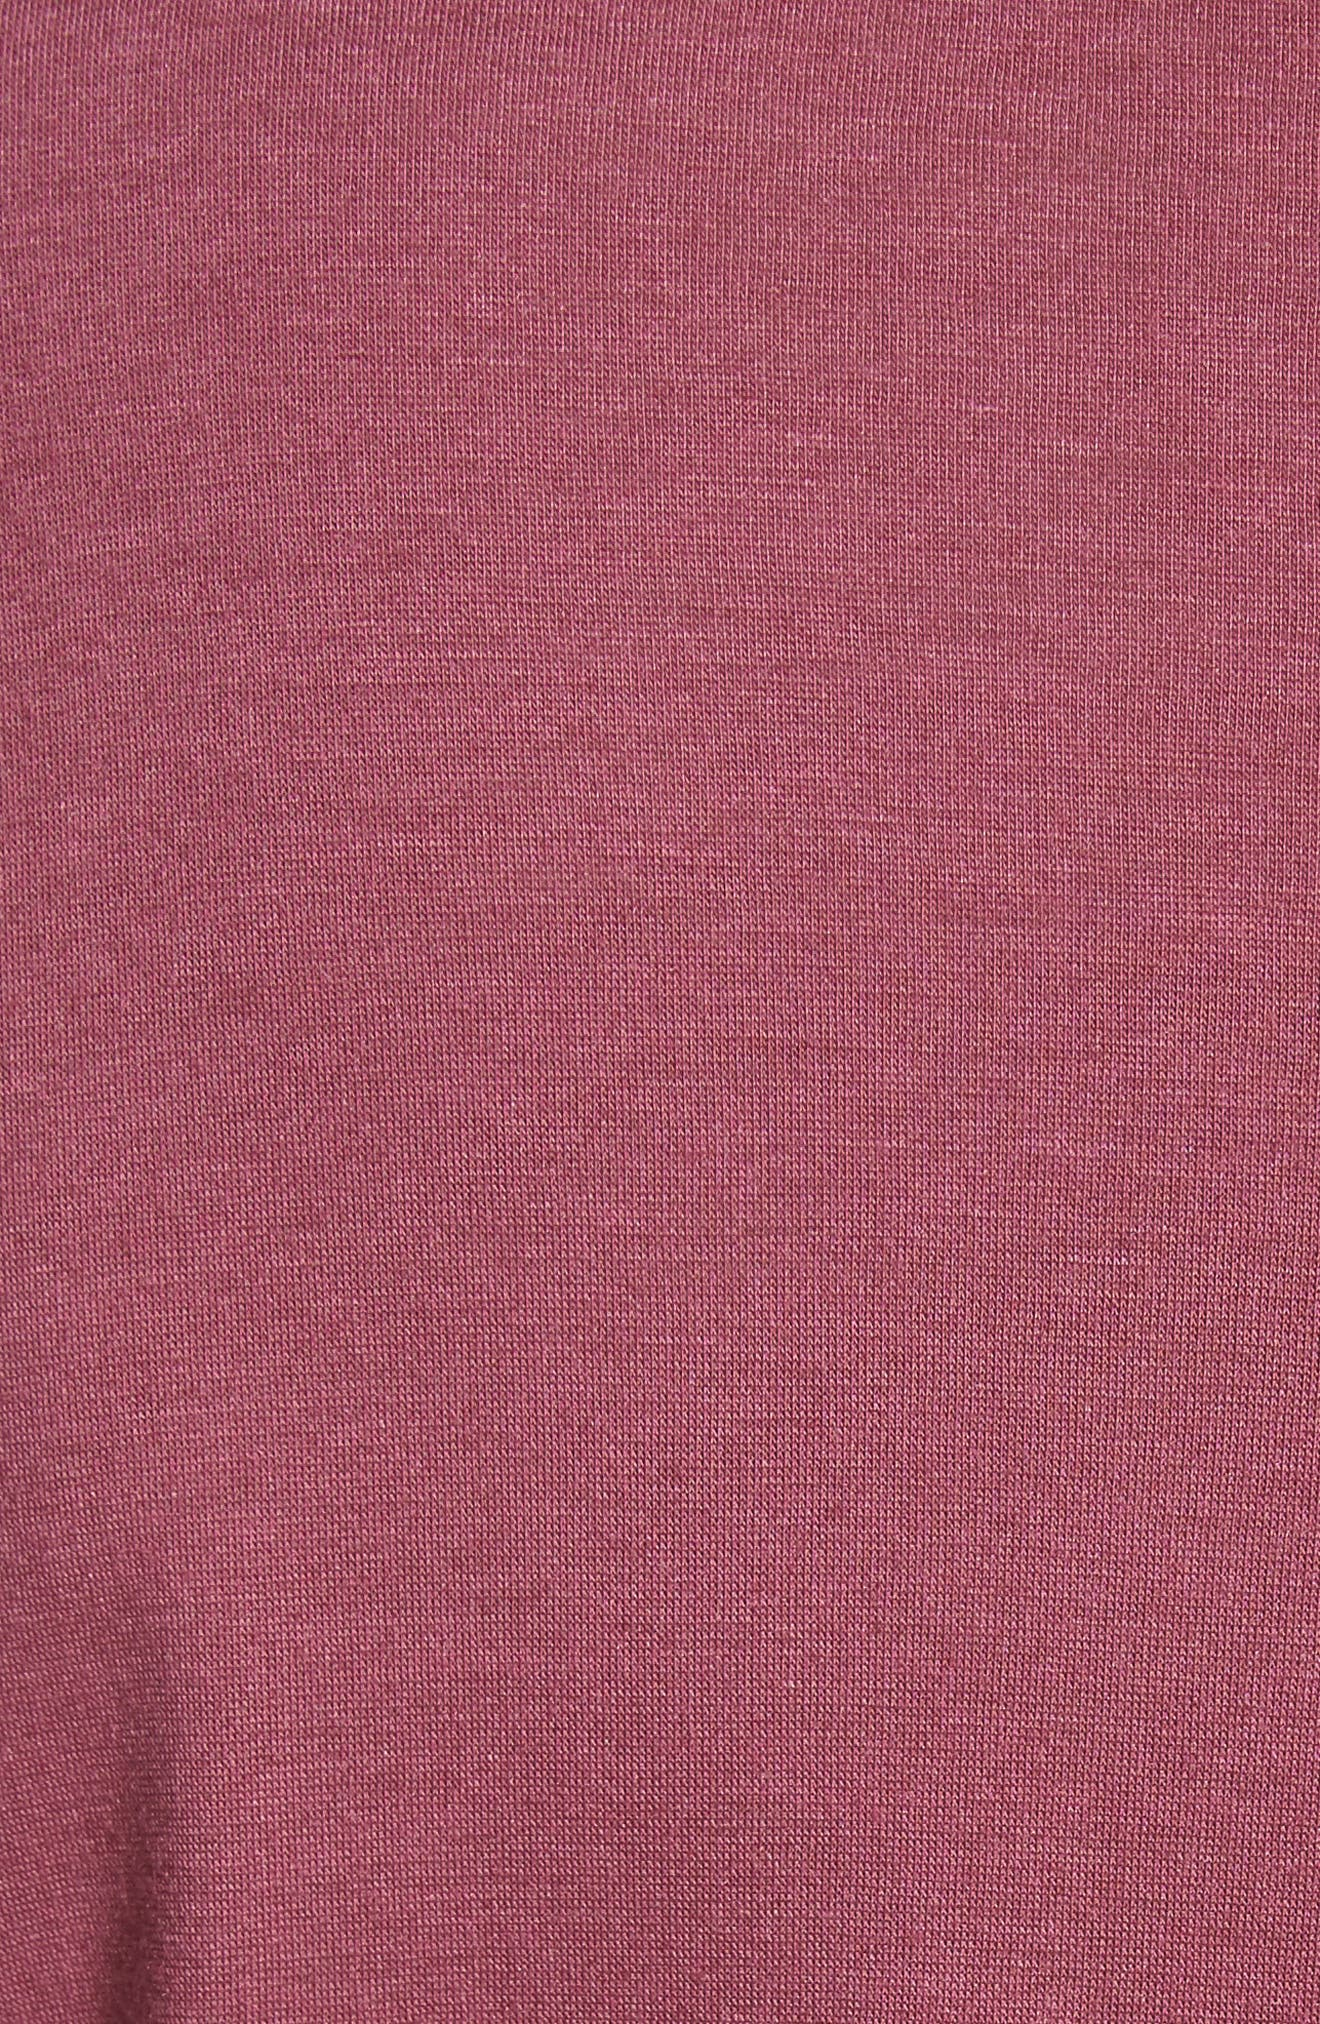 Perfect Boatneck Tee,                             Alternate thumbnail 5, color,